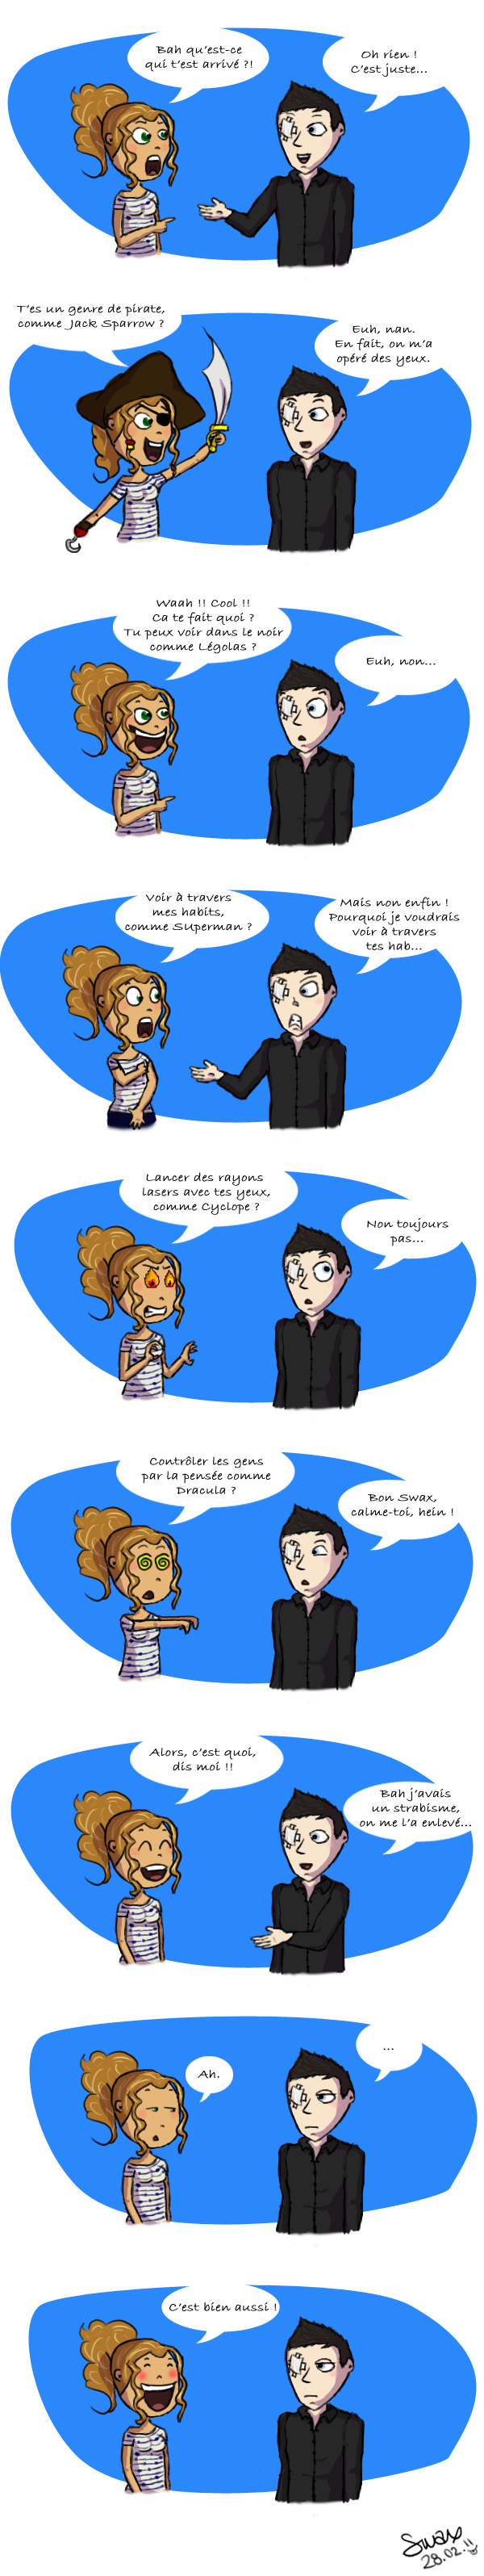 http://perso.numericable.fr/swax/Dessin%20blog/axel-yeux